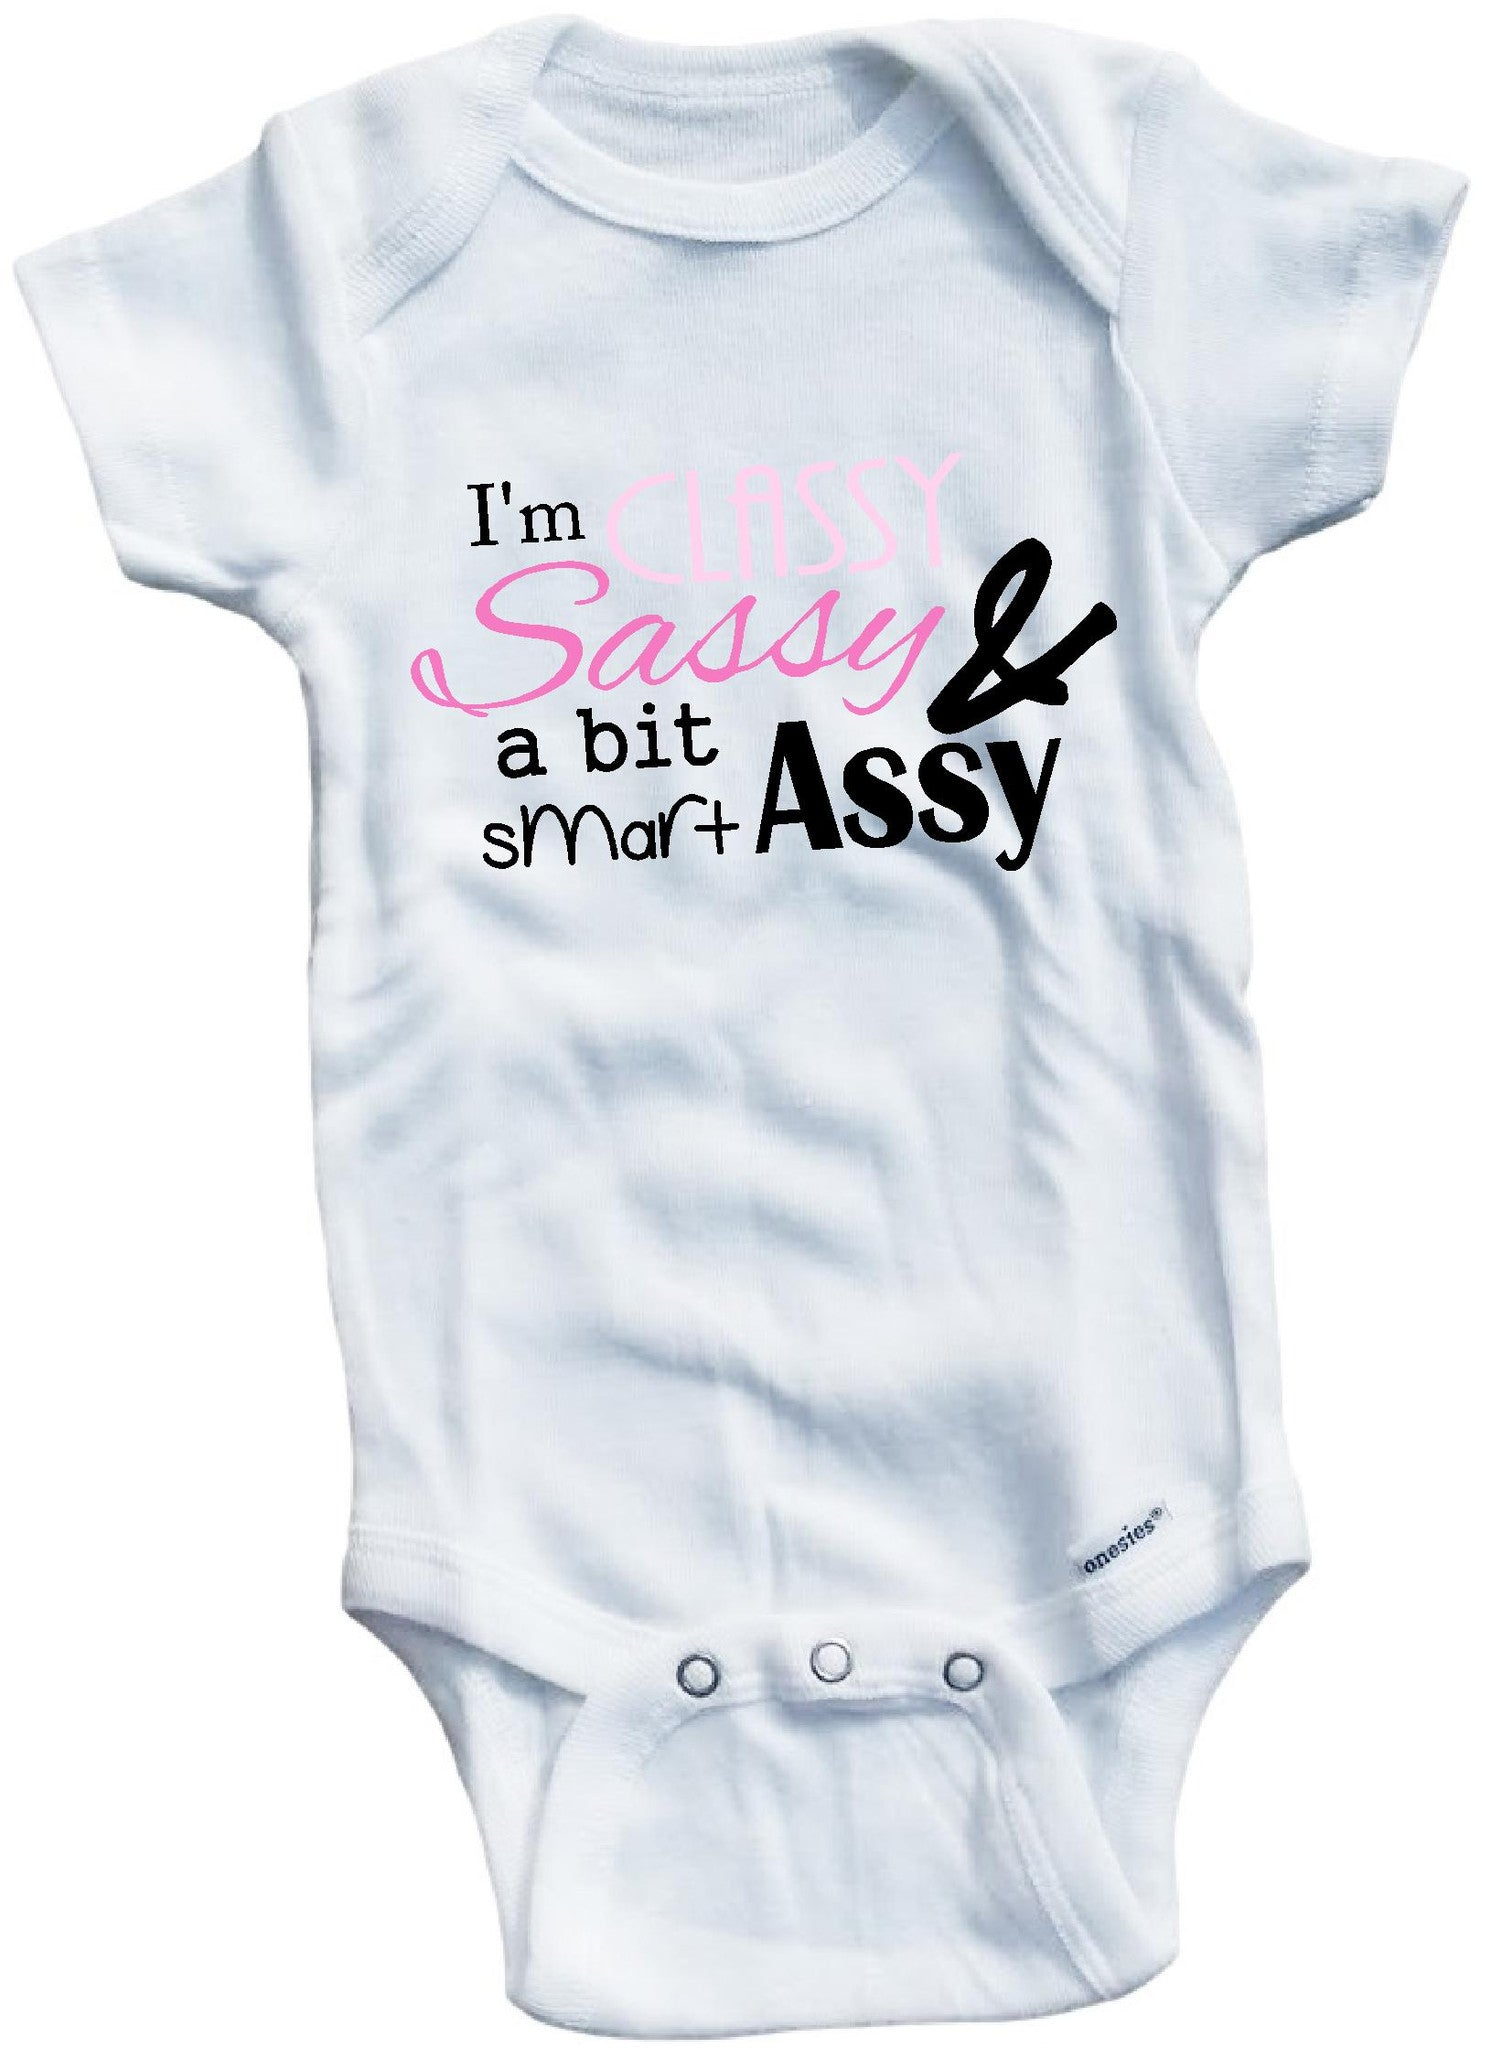 9b600a24 I'm classy sassy and a bit smart assy baby girls cute infant ...